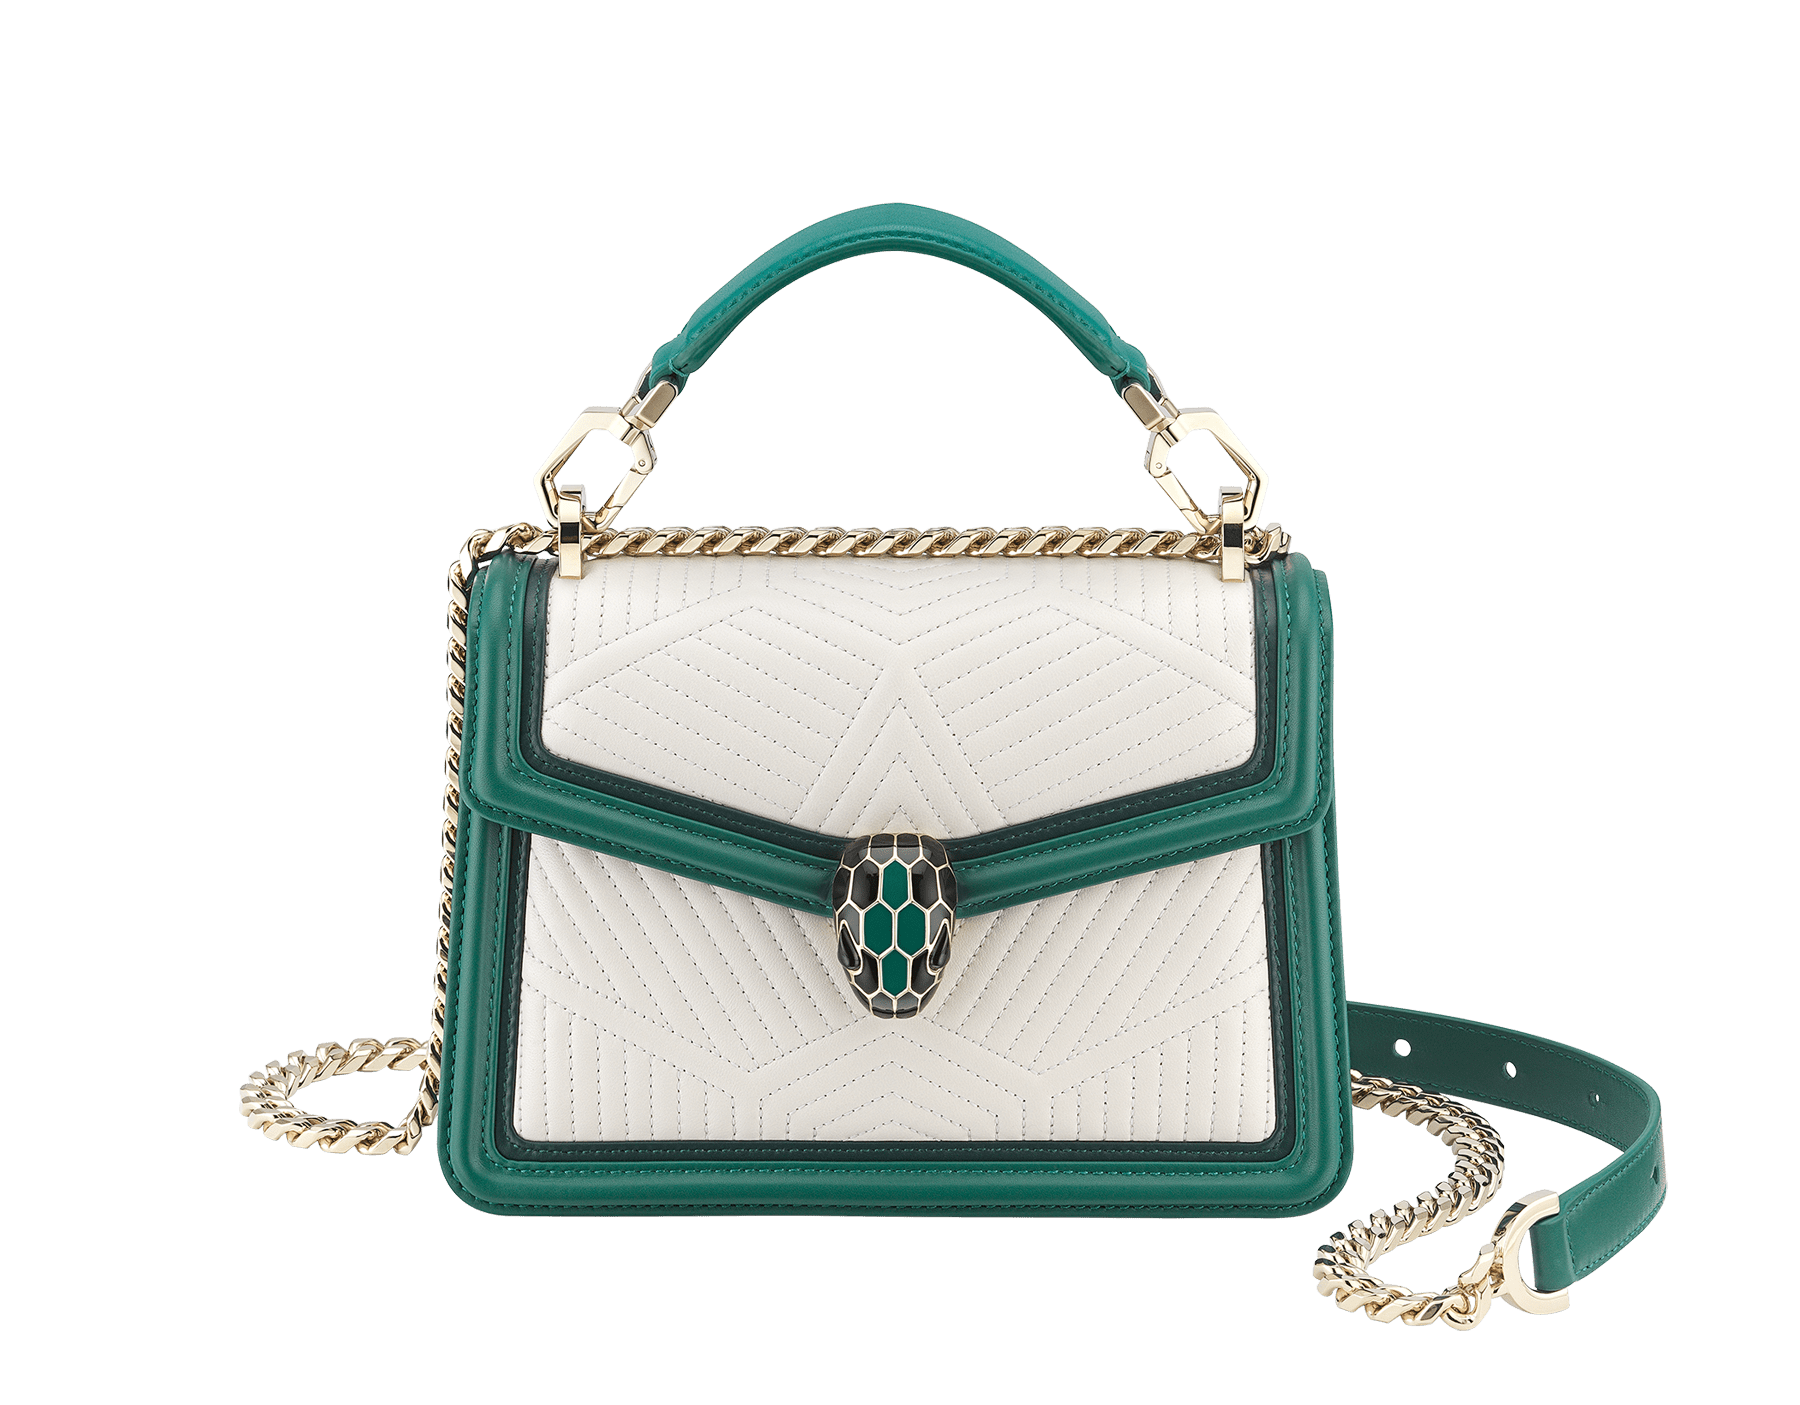 """""""Serpenti Diamond Blast"""" crossbody bag in mimetic jade quilted nappa leather and mimetic jade smooth calf leather frames. Tempting snakehead closure in light gold plated brass enriched with matte black and shiny mimetic jade enamel and black onyx eyes. 1063-FQDb image 1"""